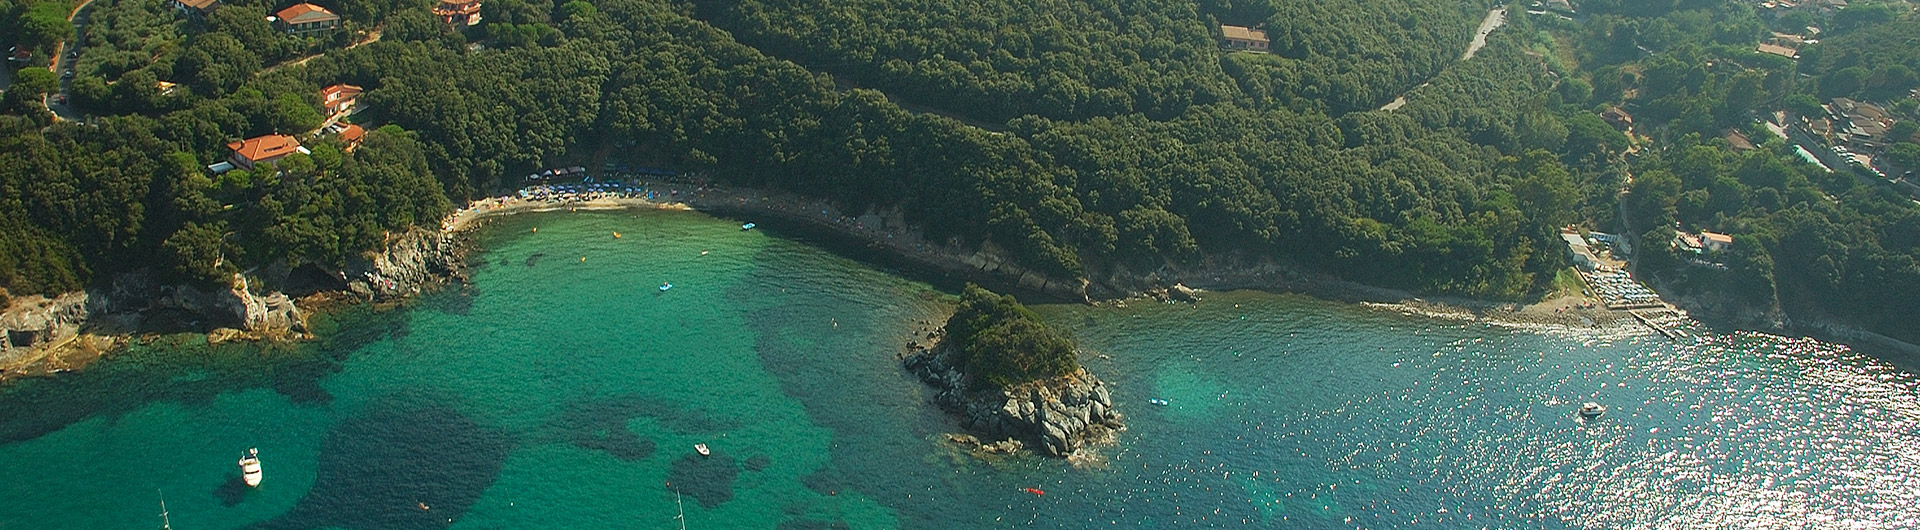 Hotels Edera and Casa Rosa, vacation on the most beautiful beaches of Elba island